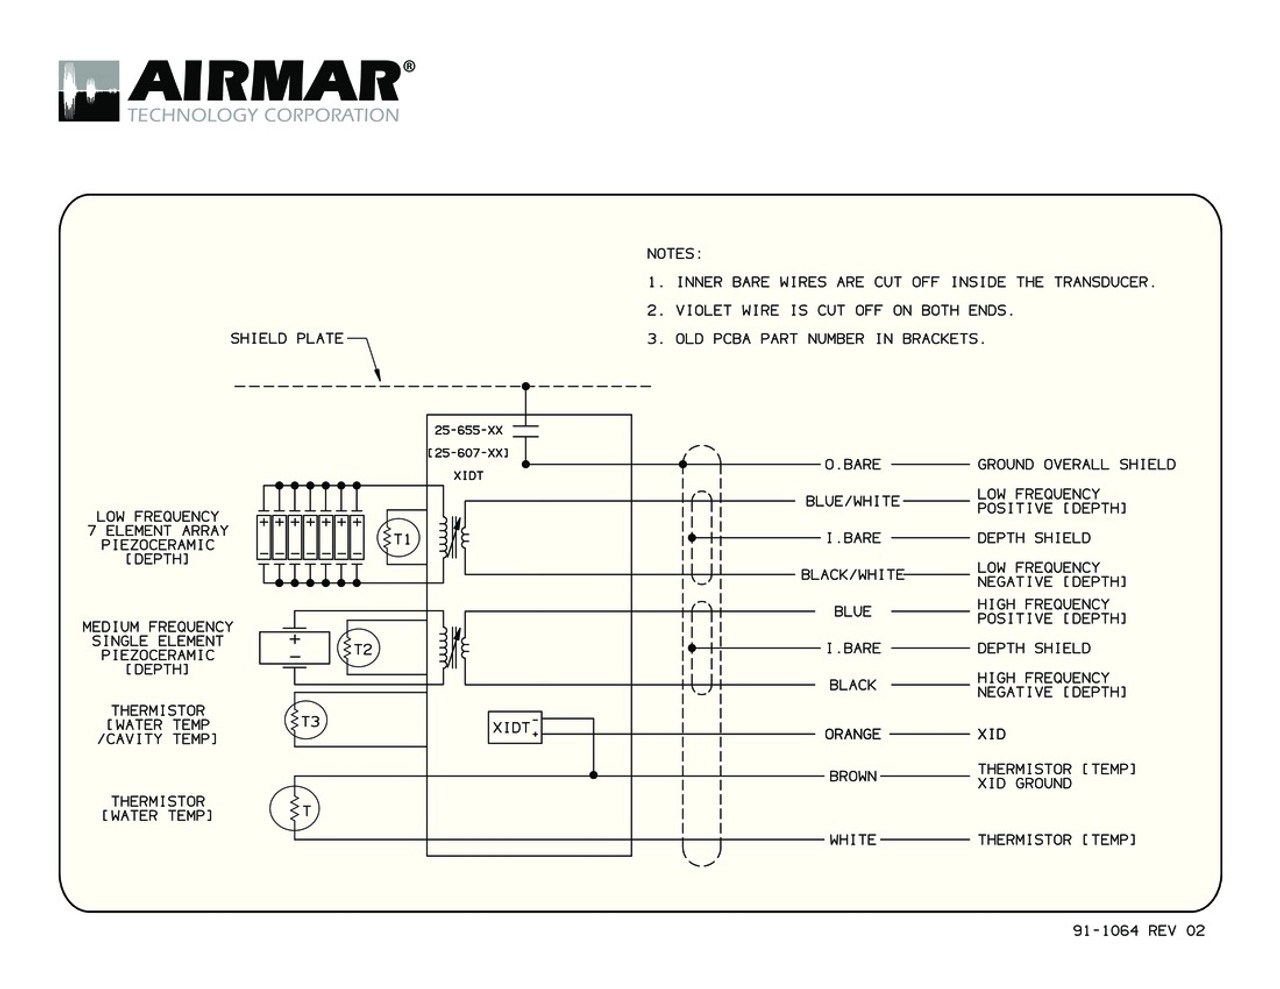 hight resolution of airmar wiring diagram tm265lm blue bottle marine airmar transducer wiring diagram tm265c lm with bare wire